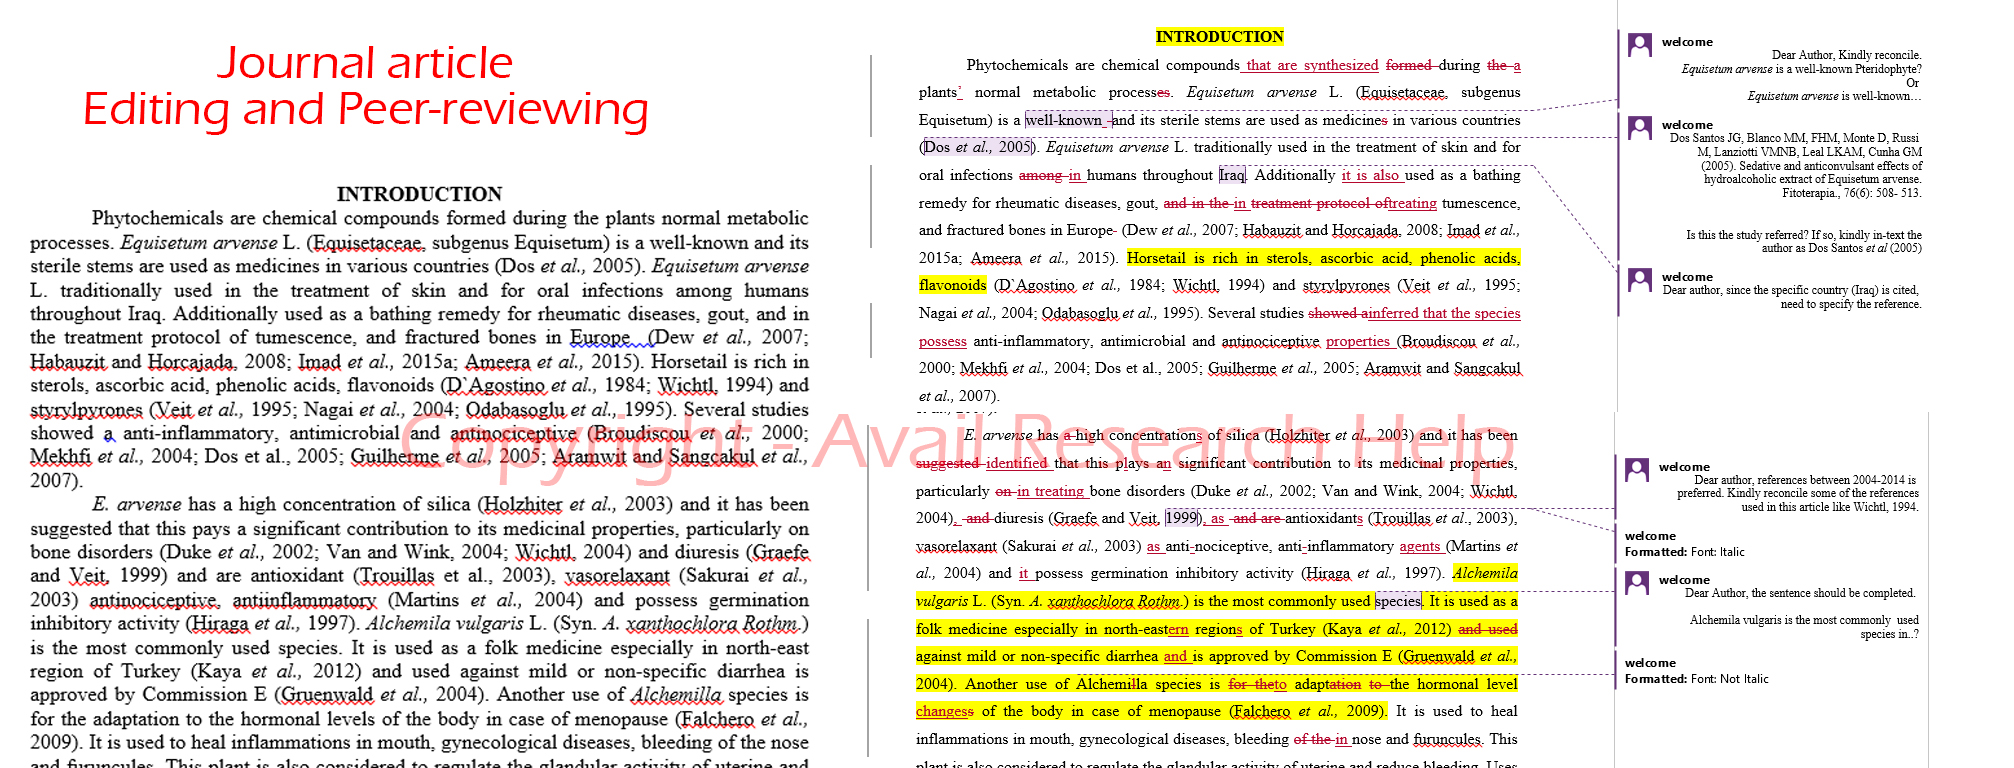 Professional Peer Reviewed Journal Article Editing and Proofreading Services